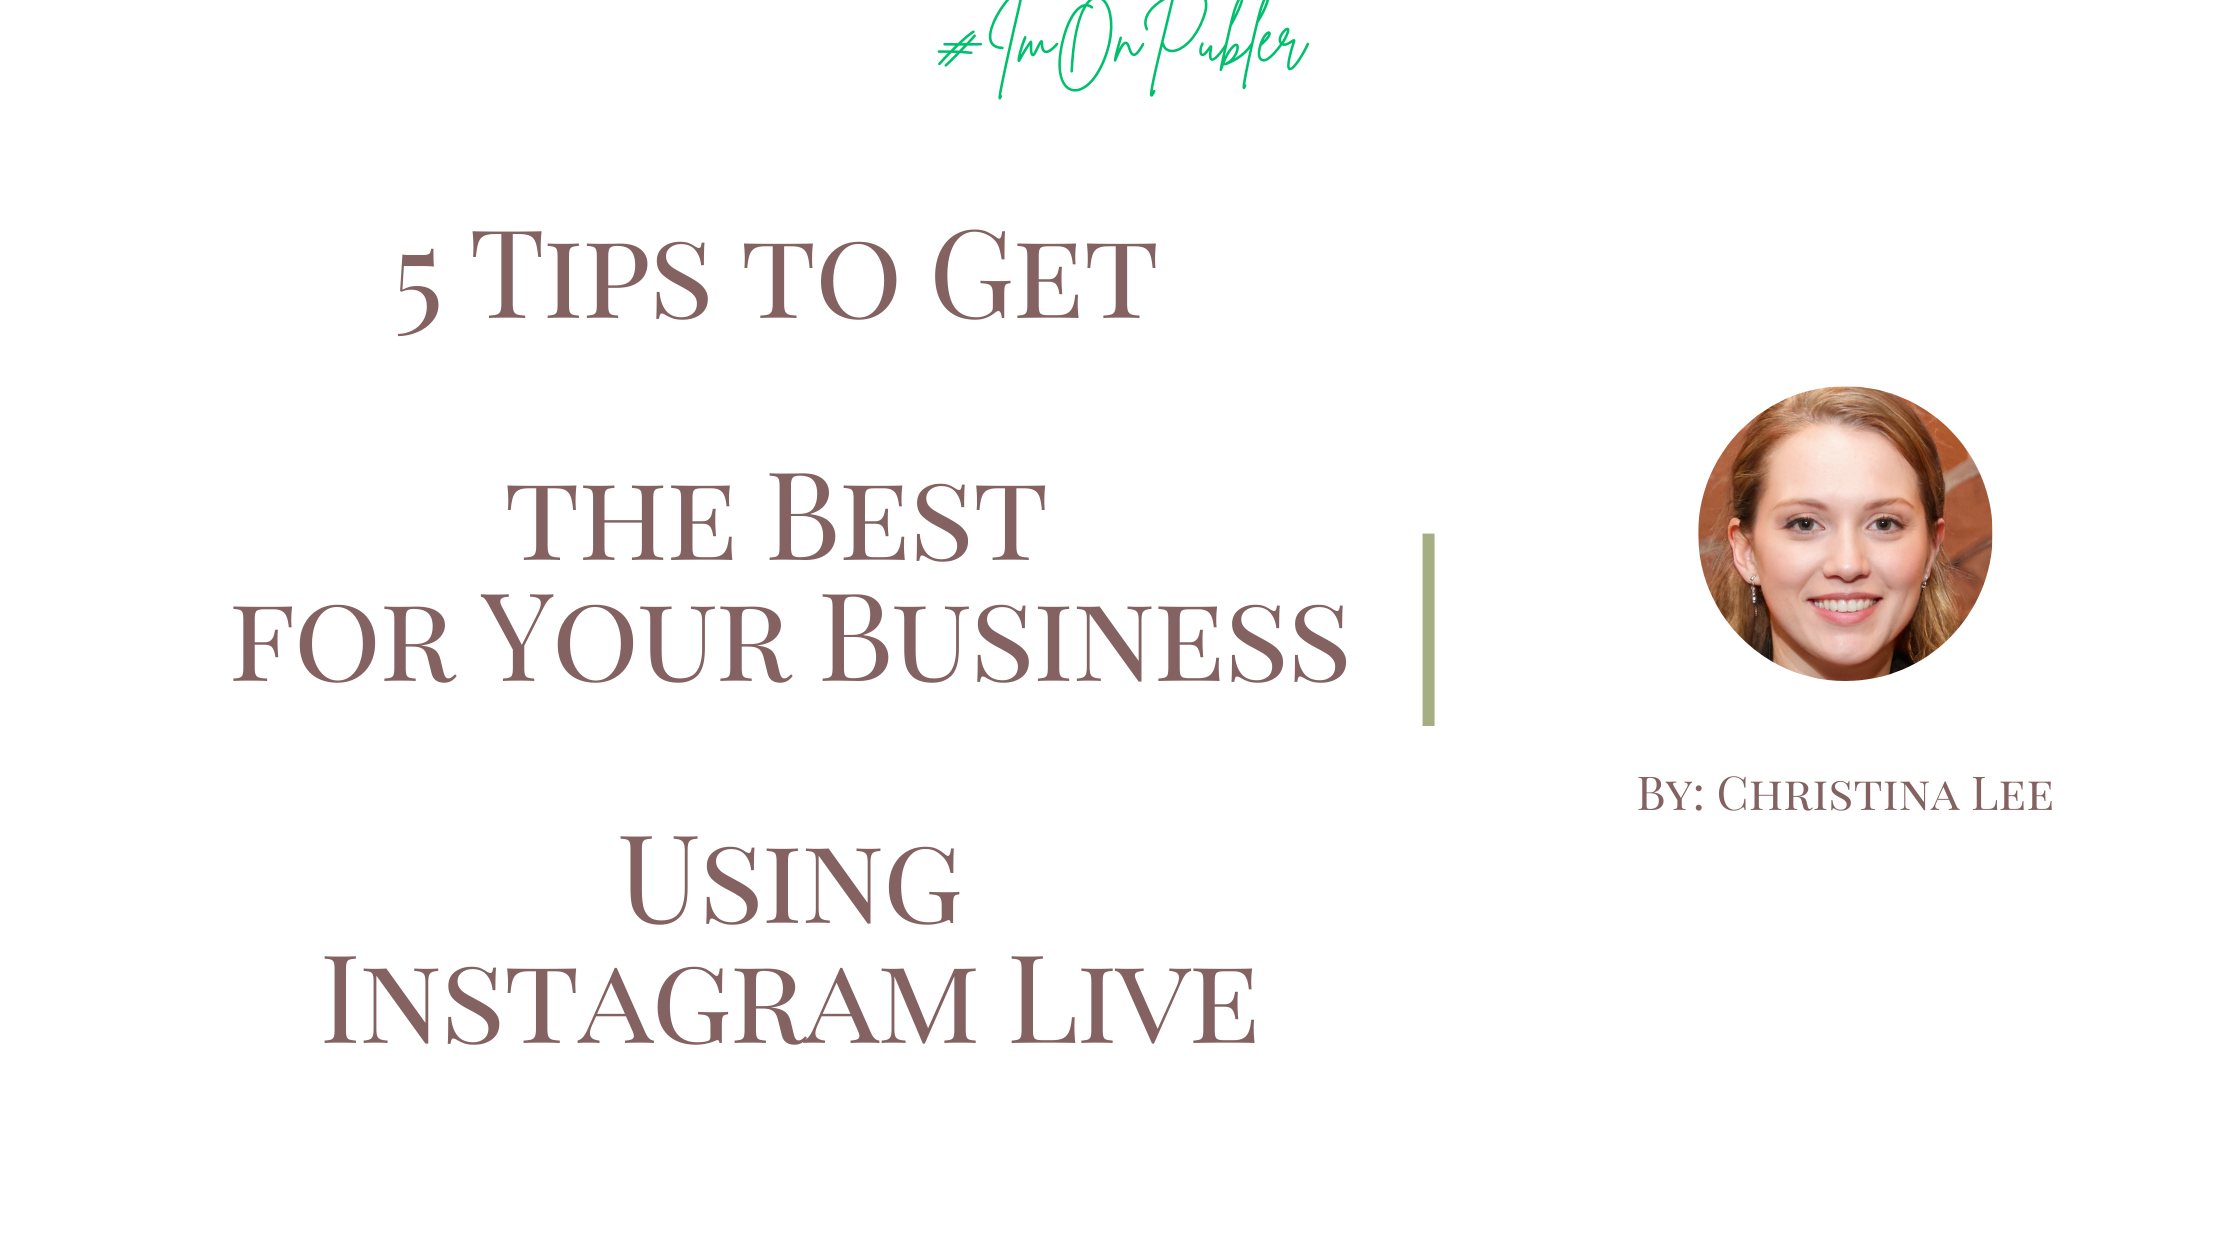 5 Tips to Get   the Best  for Your Business   Using  Instagram Live Christina Lee